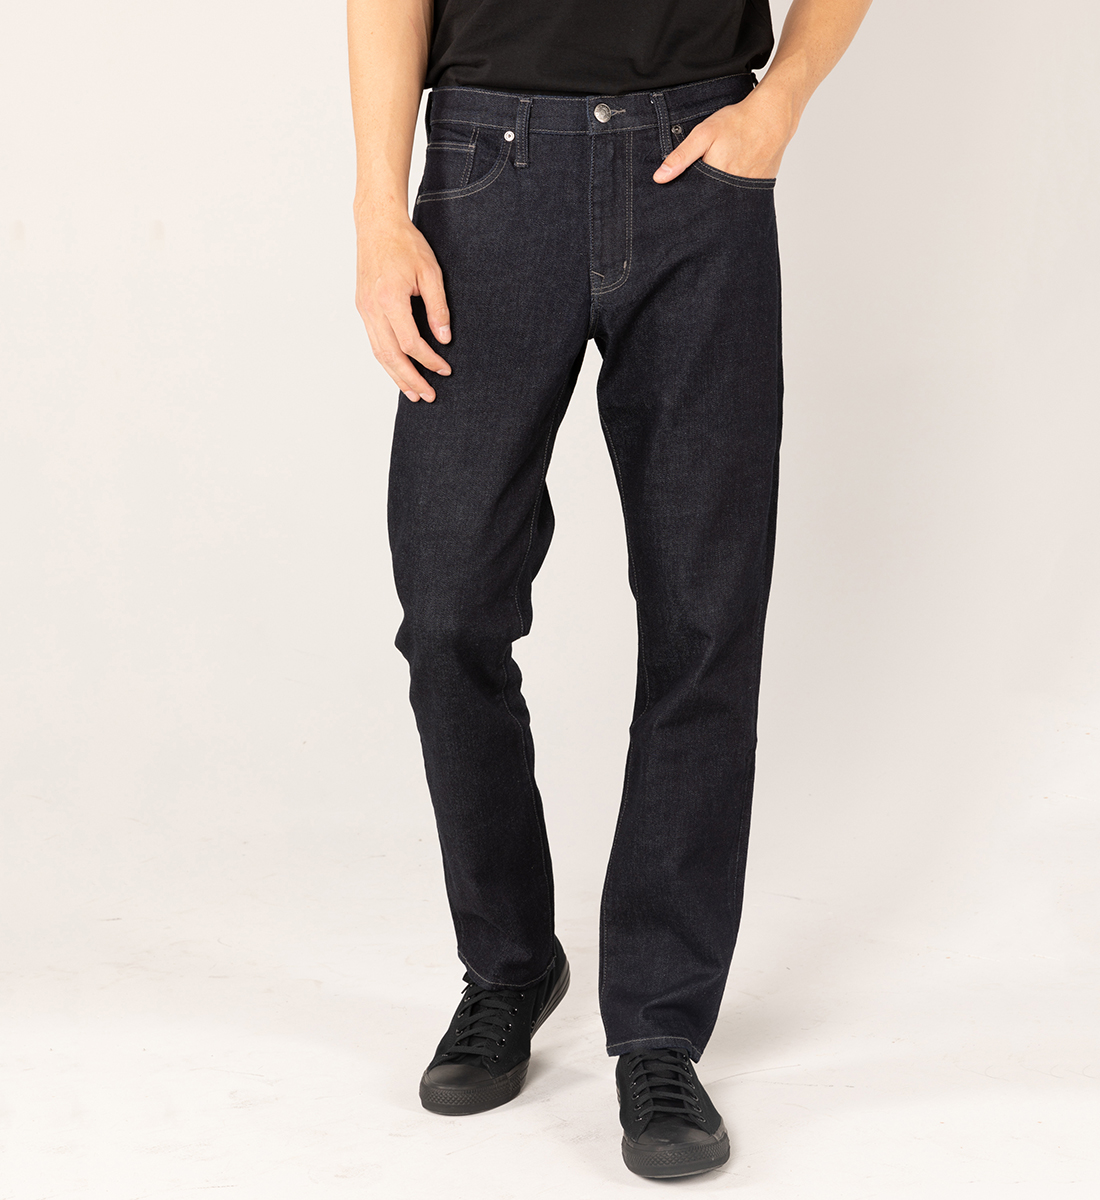 Silver Jeans Machray Classic Fit Straight Leg Jeans - Eco-Friendly Wash